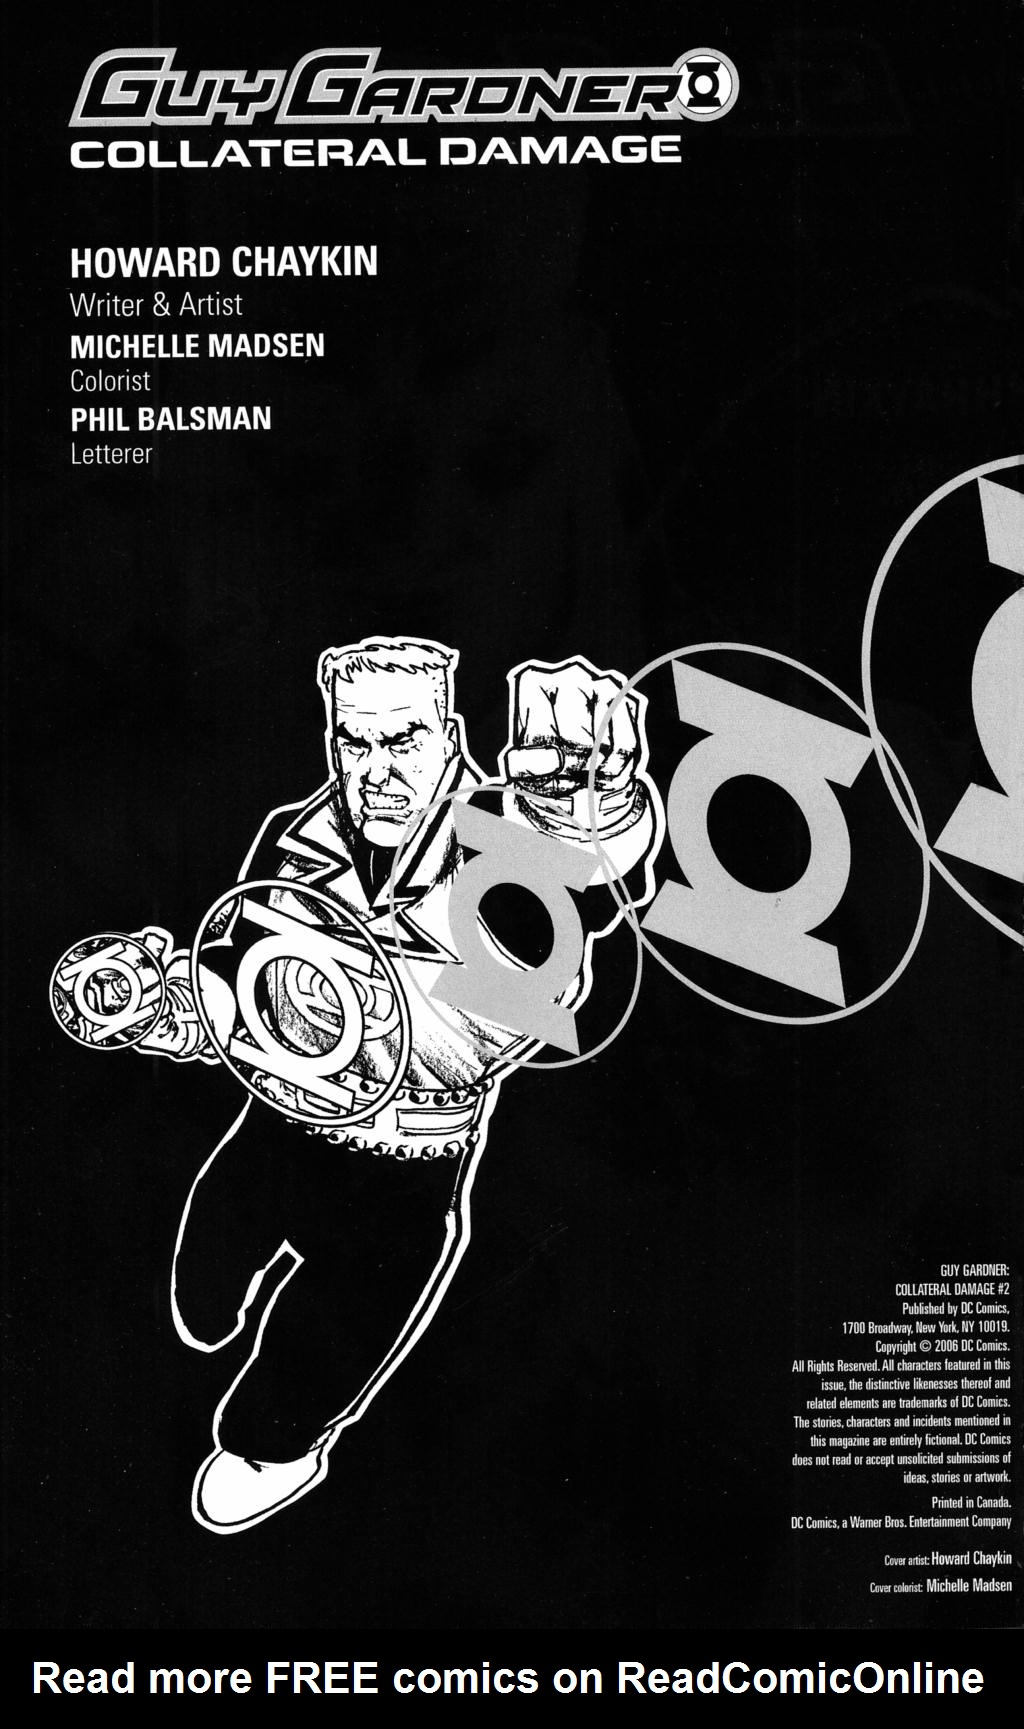 Read online Guy Gardner: Collateral Damage comic -  Issue #2 - 2